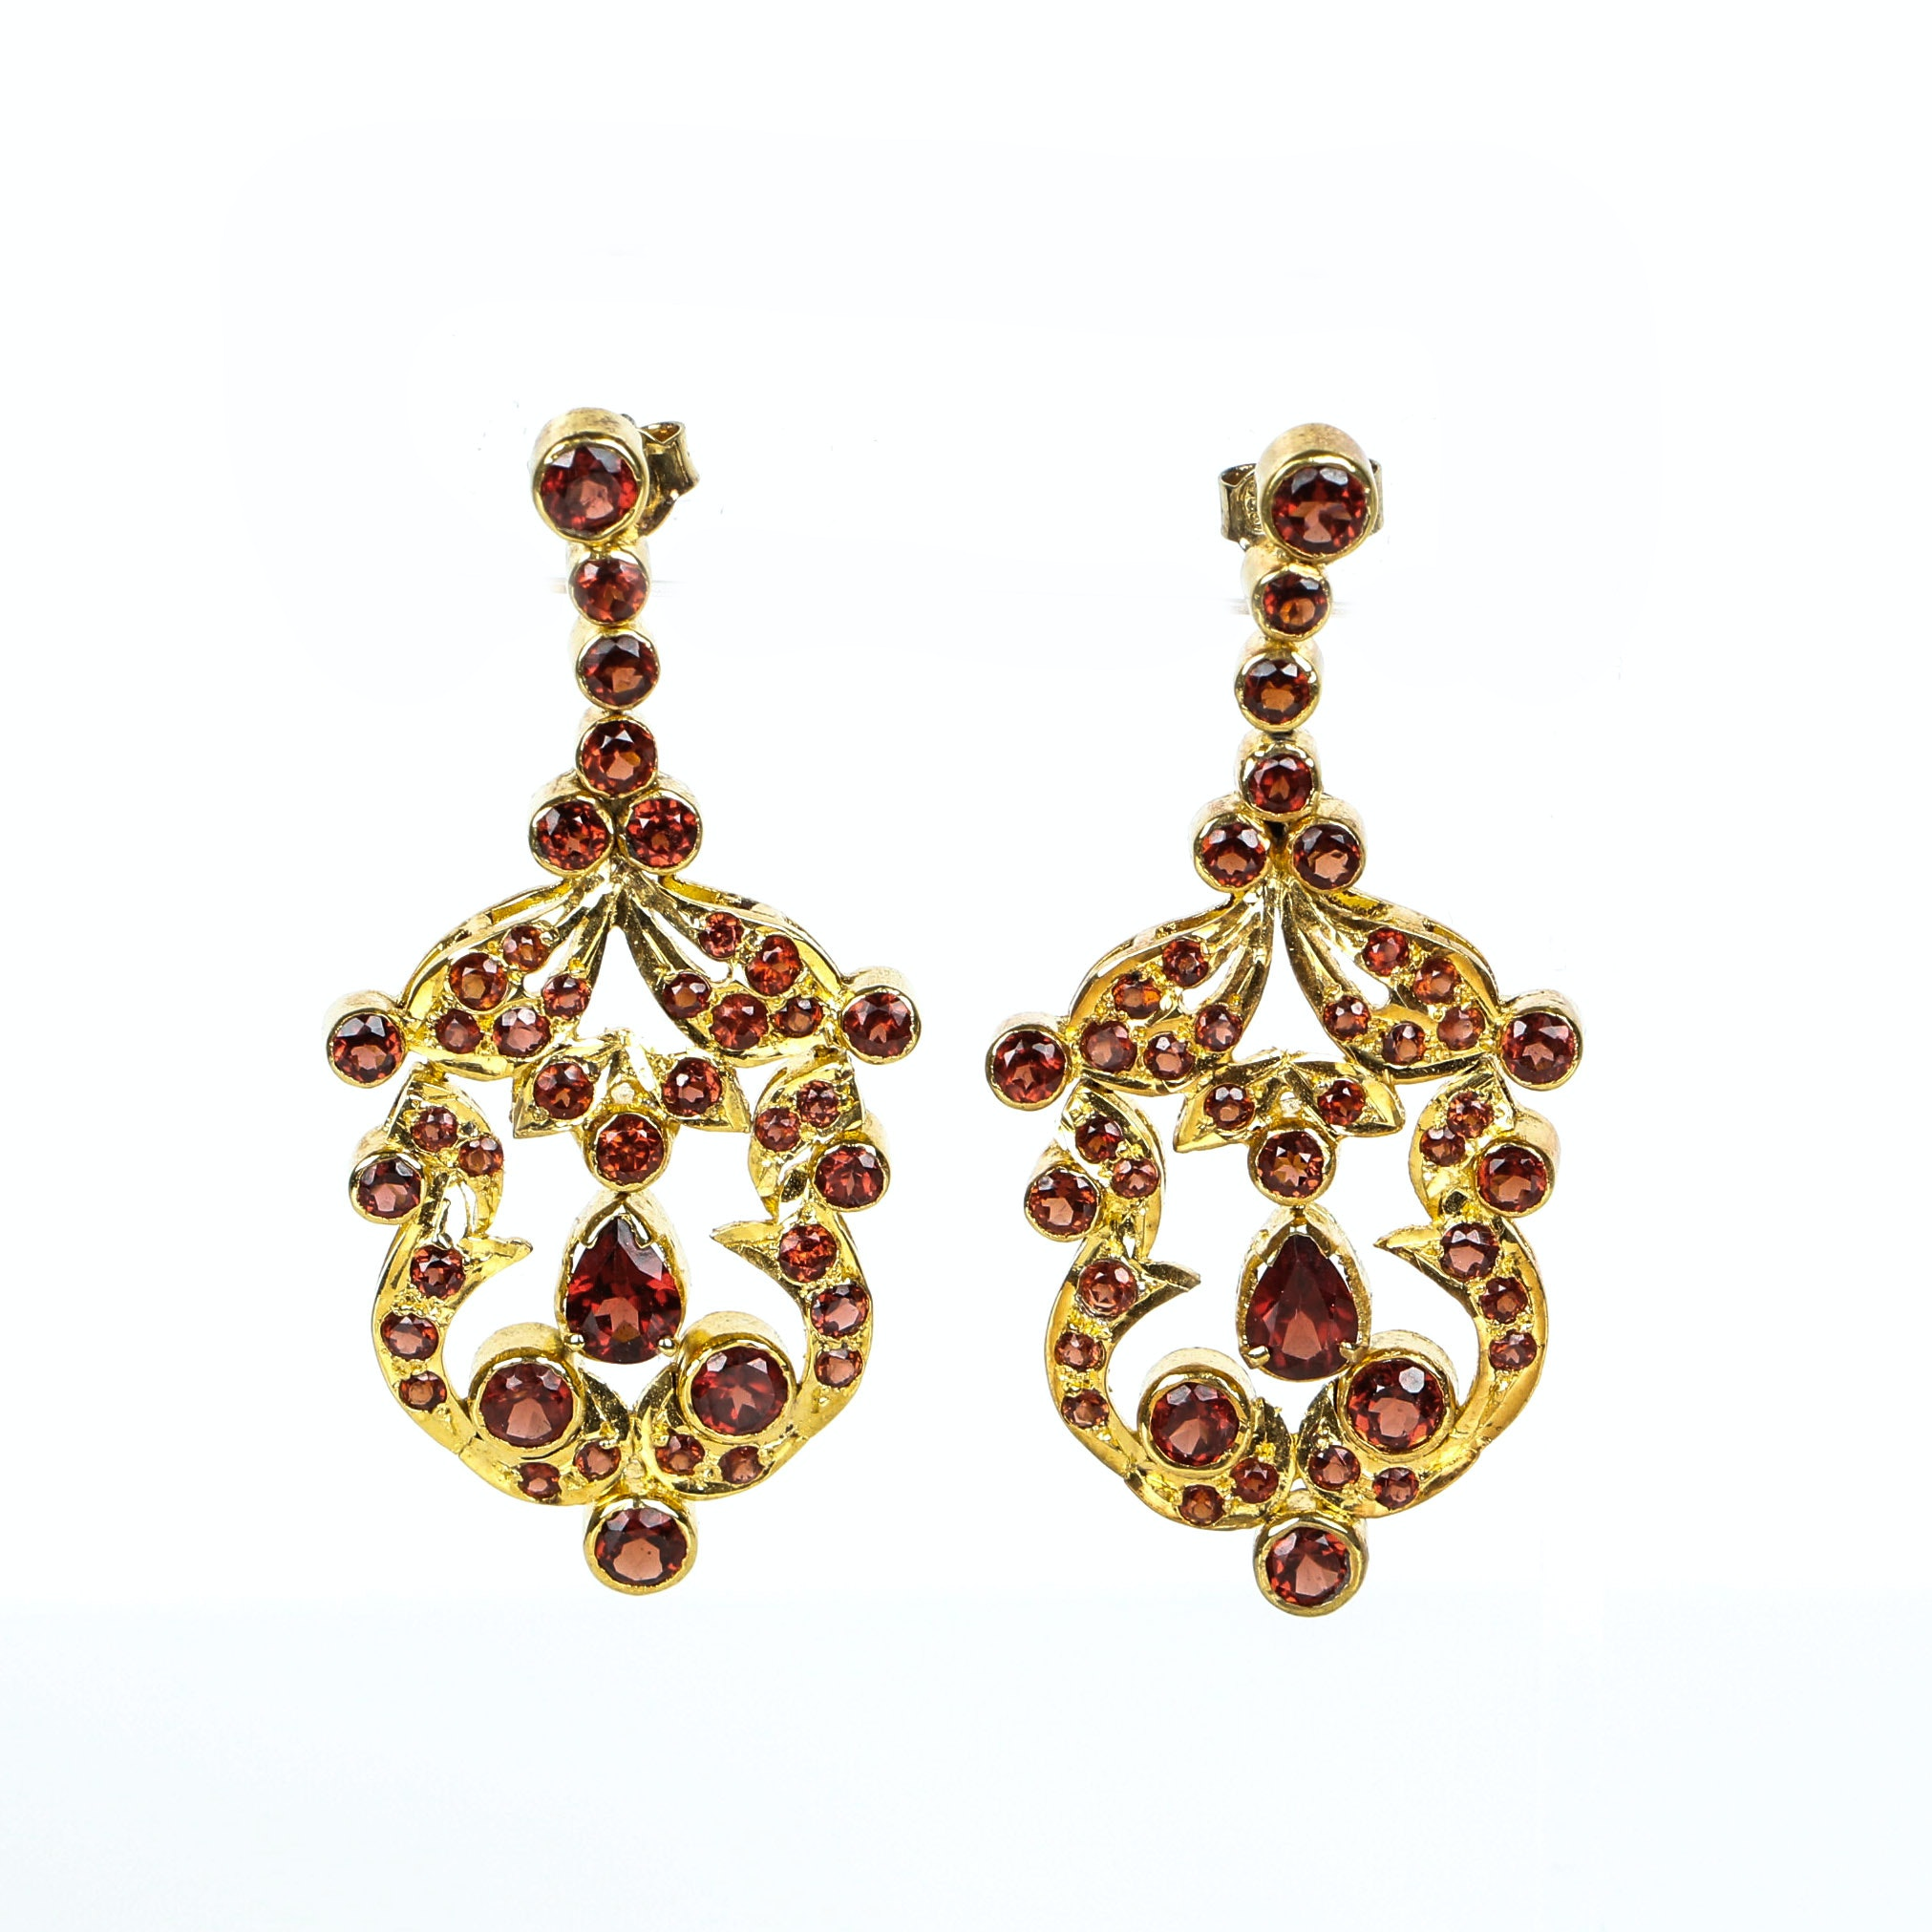 Vintage Garnet Chandelier Earrings Mounted in Vermeil